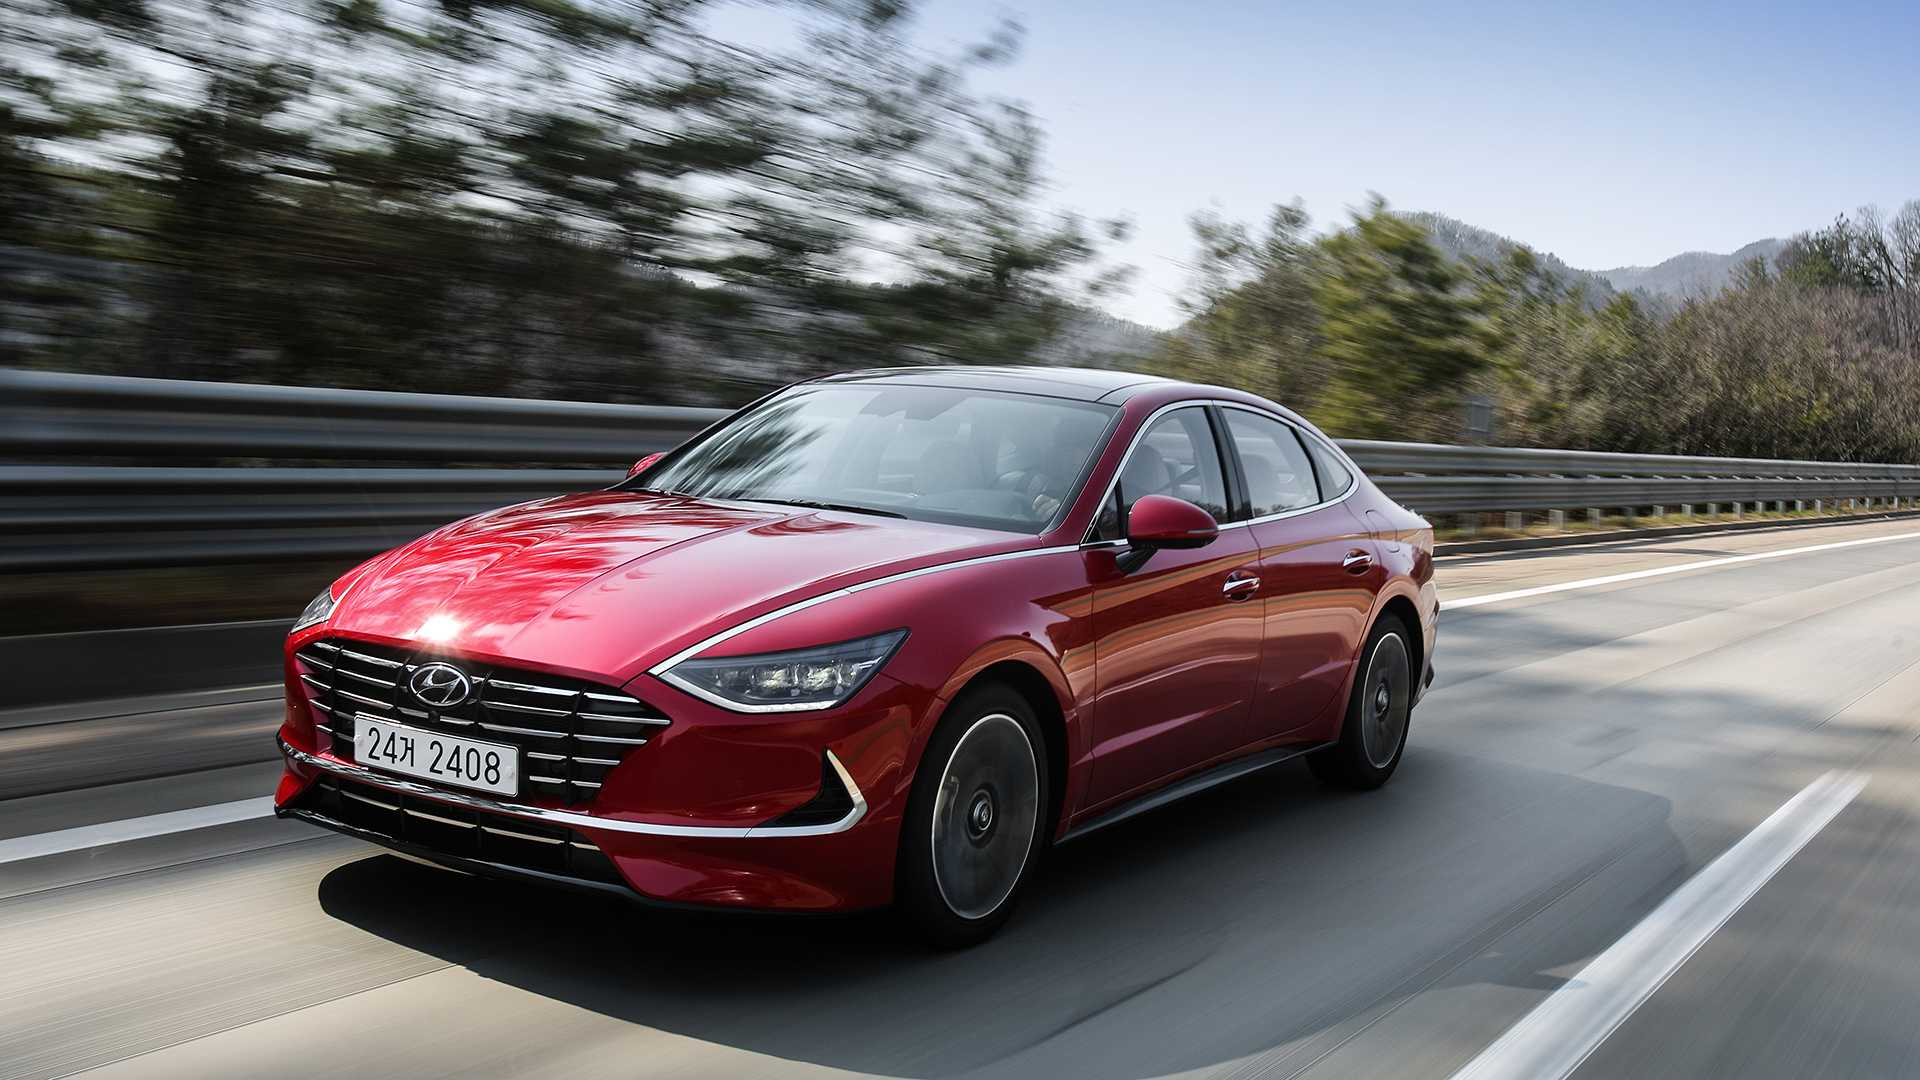 79 All New Hyundai Sonata 2020 Reviews